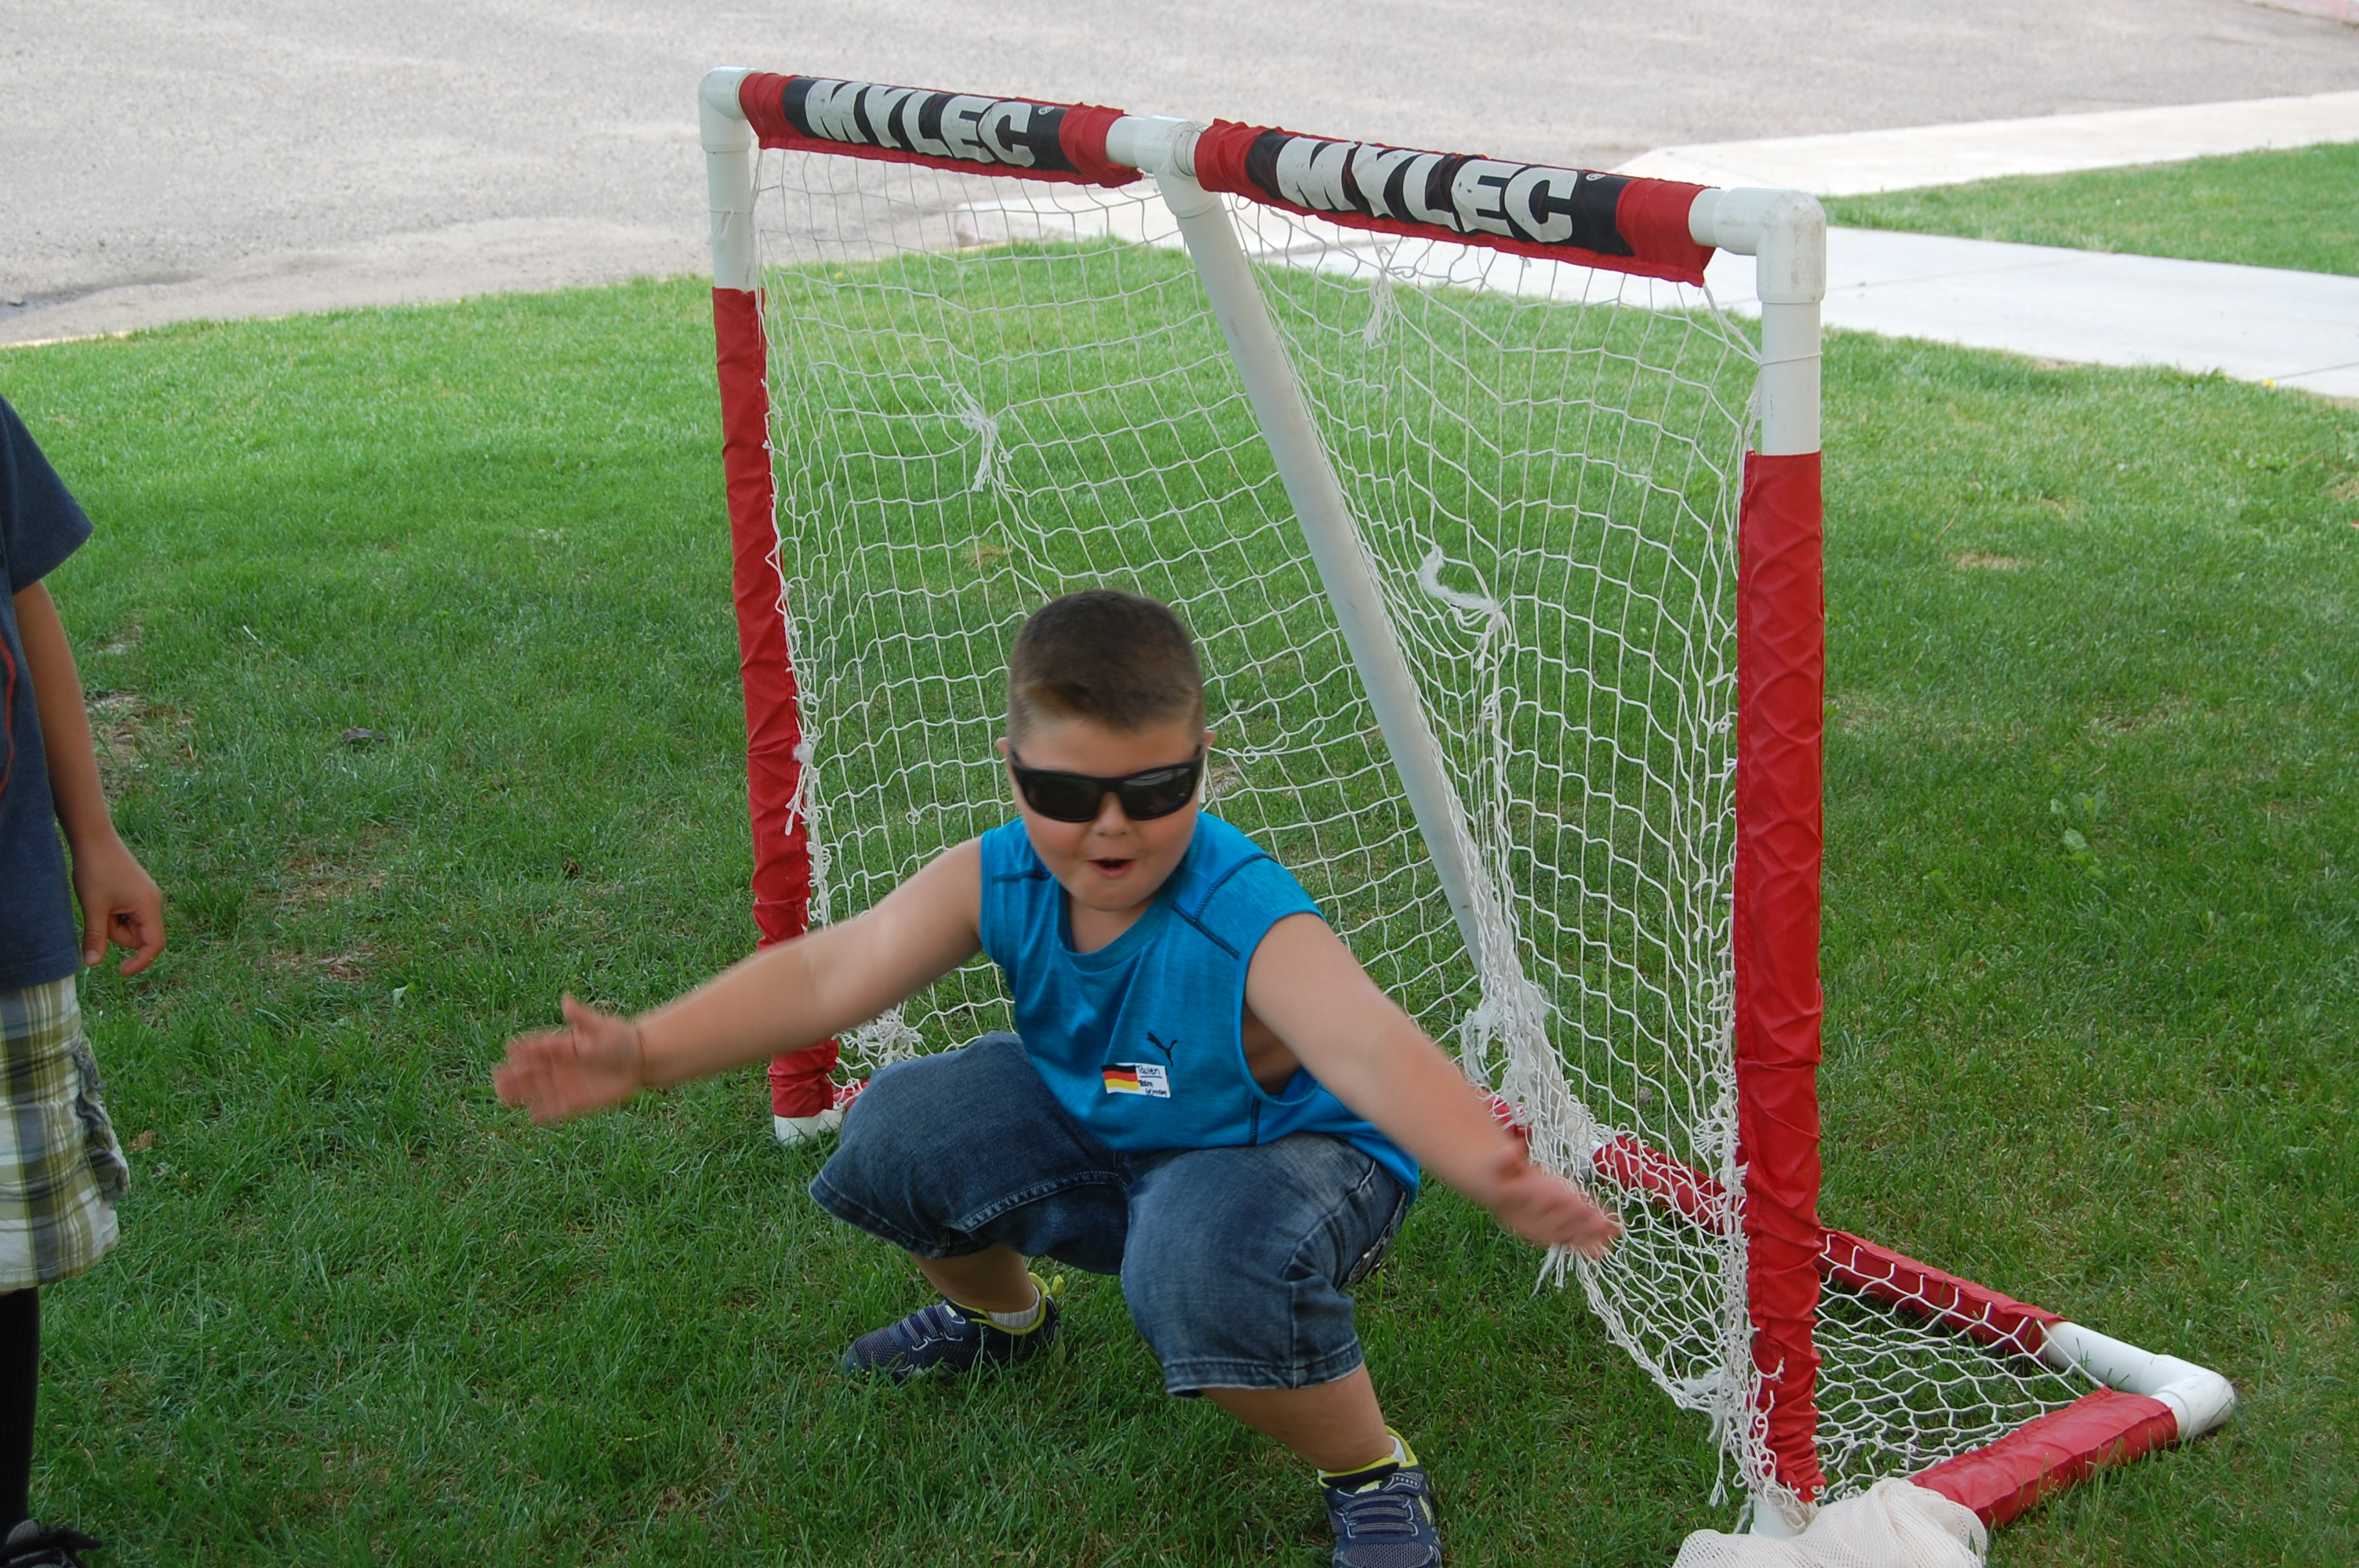 Tavien being the goalie